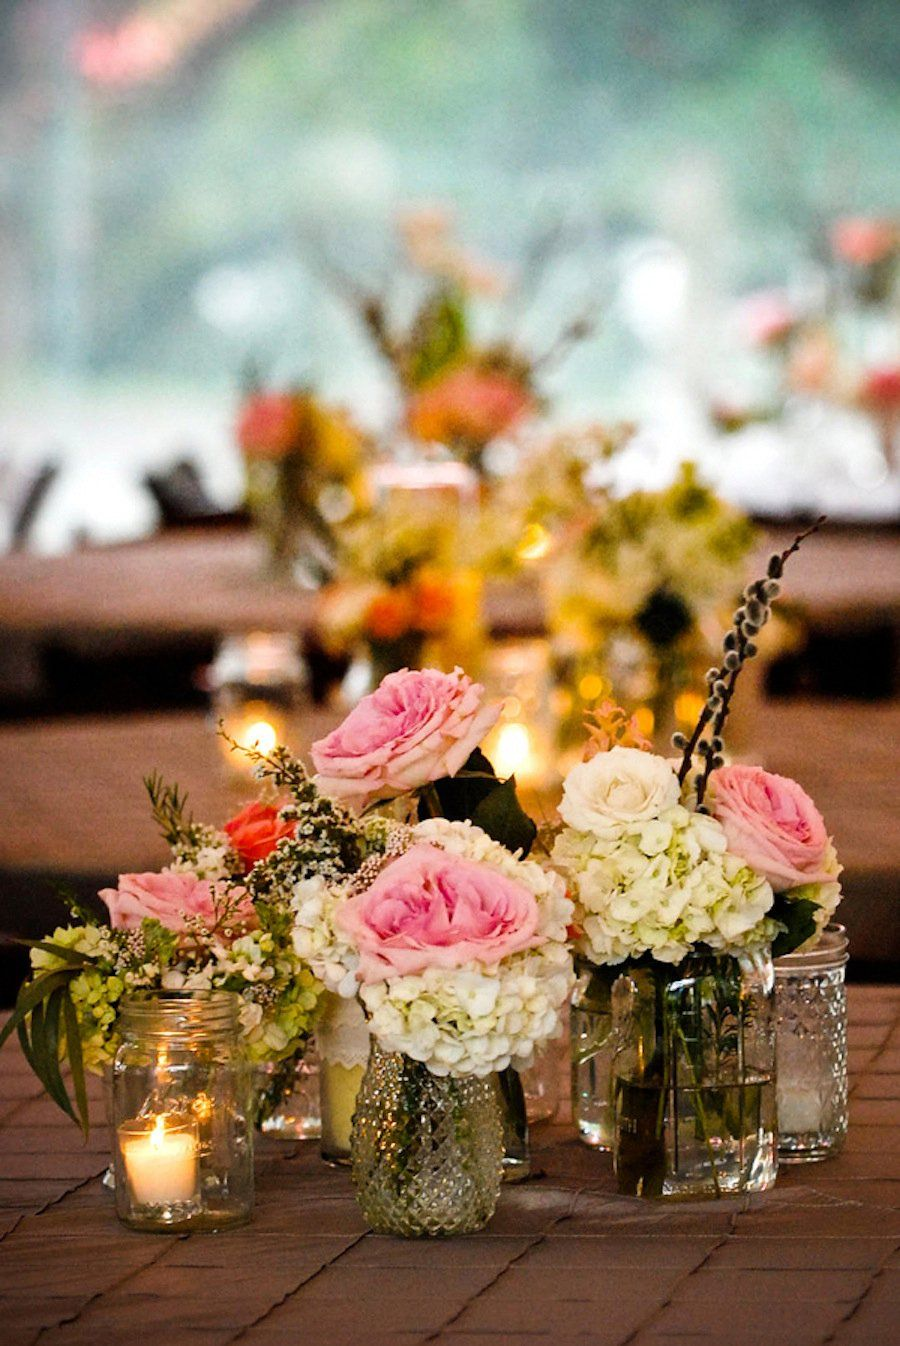 small vases with floral groupings-simple but beautiful centerpiece & small vases with floral groupings-simple but beautiful centerpiece ...